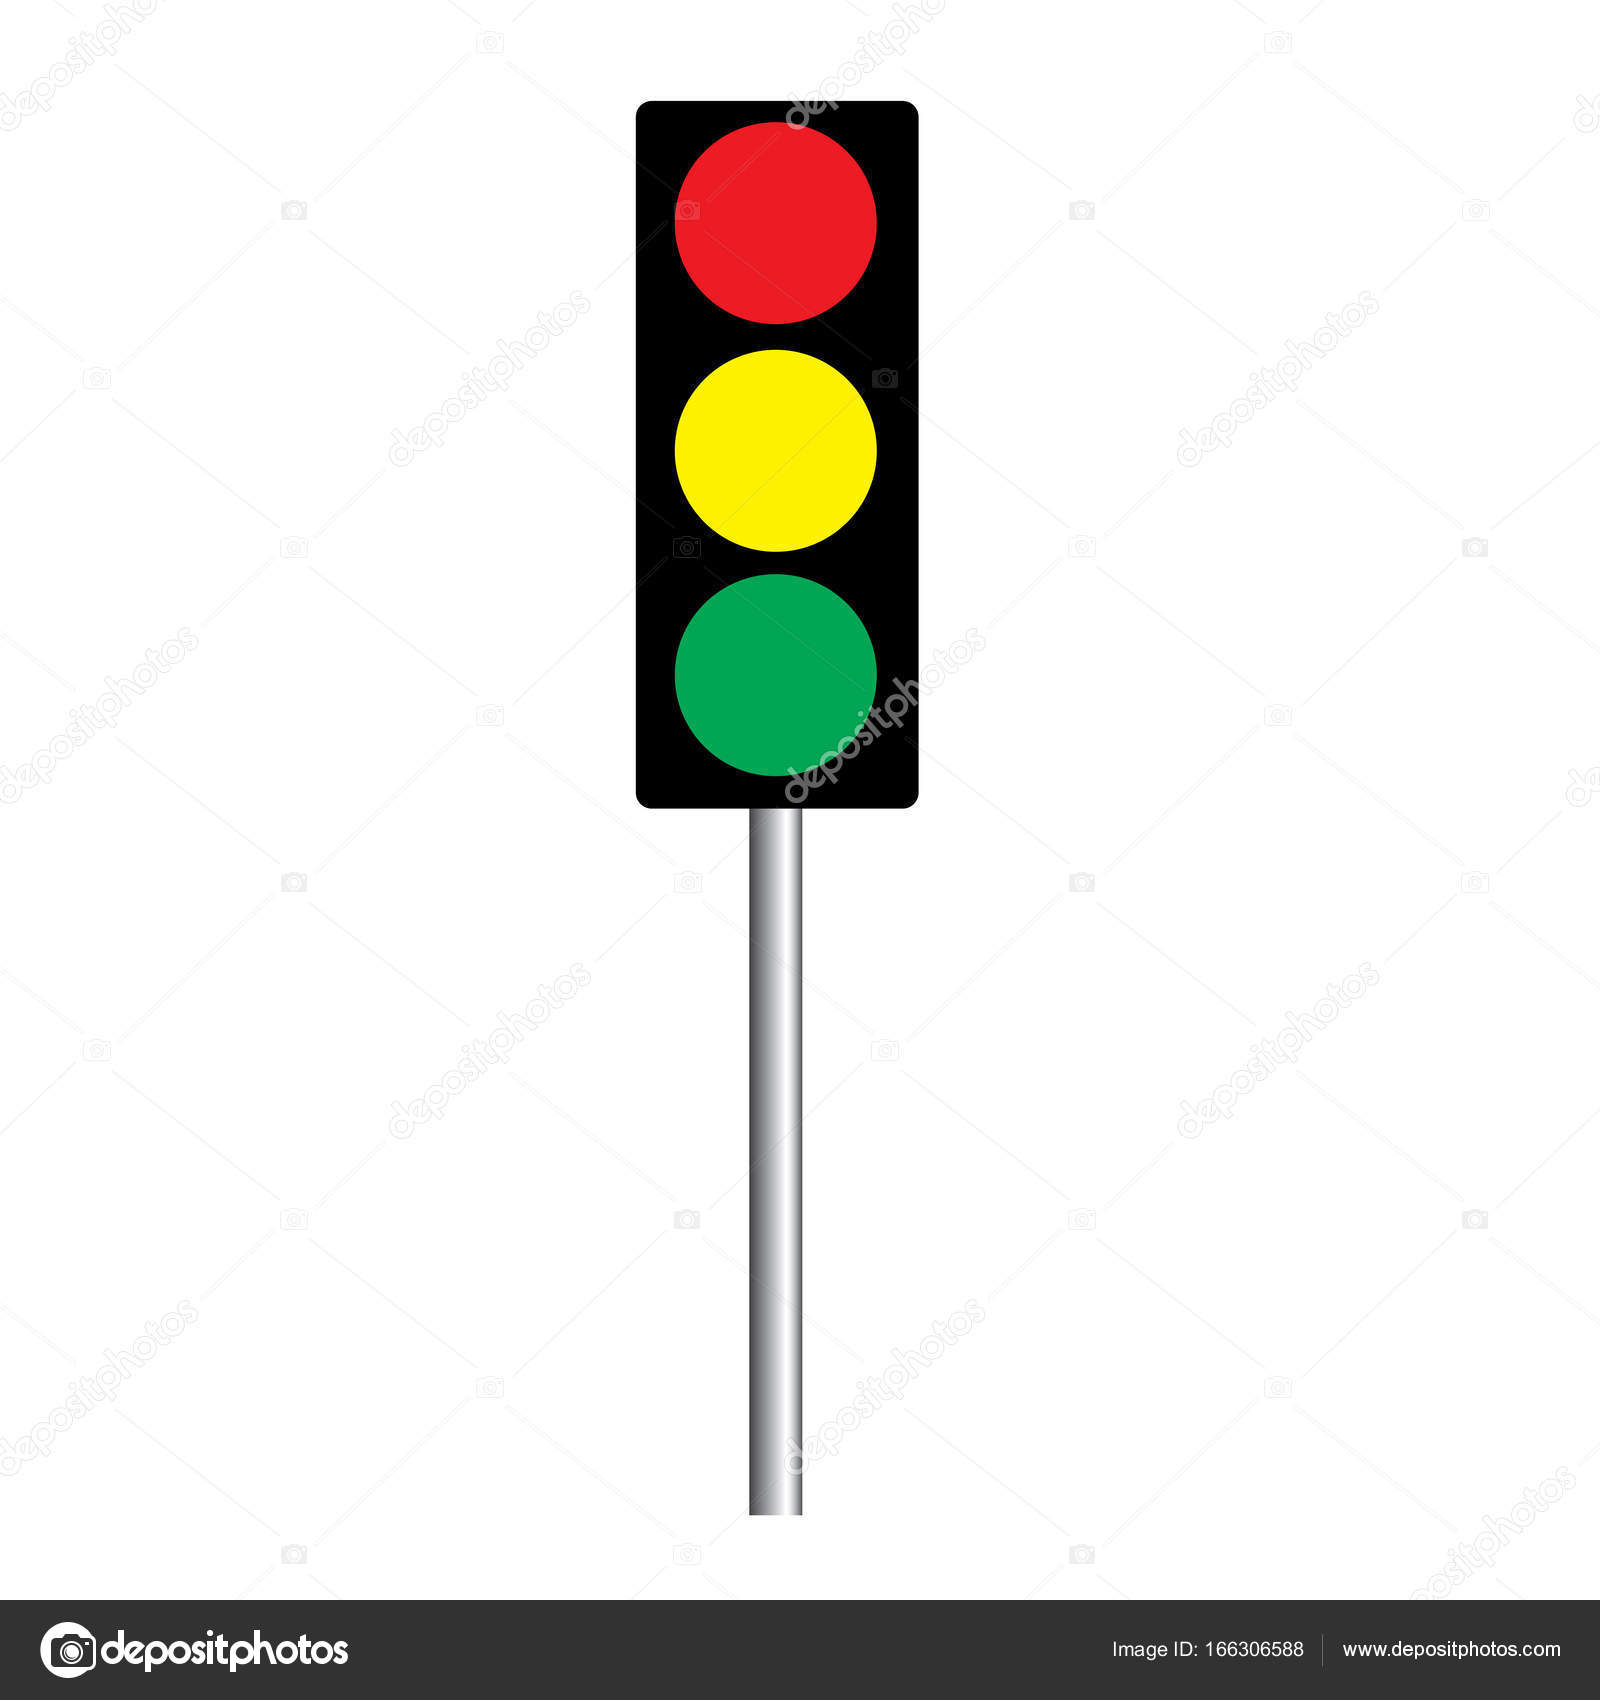 1600x1700 Traffic Light Interface Icons. Red, Yellow Green (Go, Stop